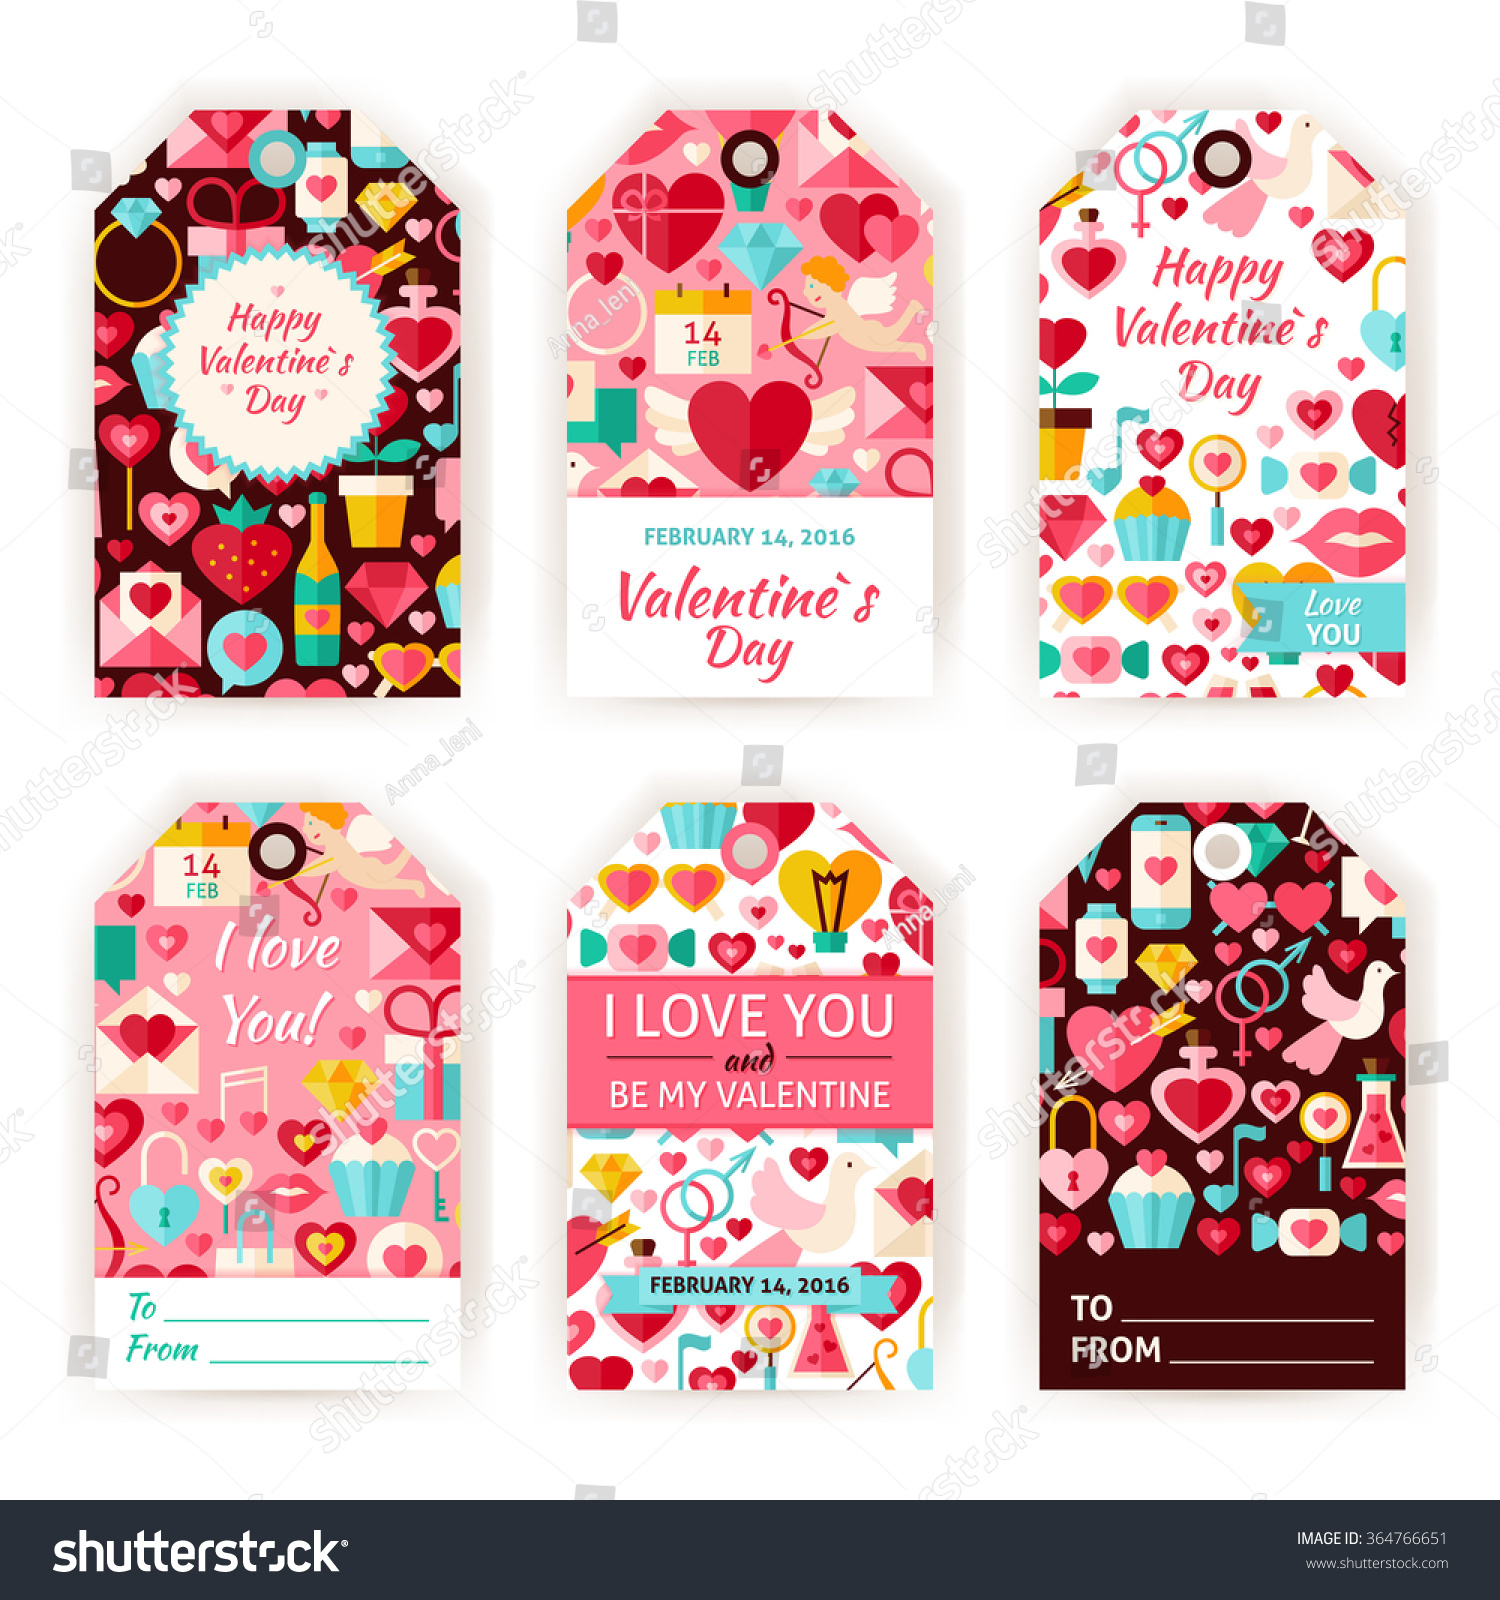 Happy Valentine Day Gift Tag Template Set Flat Design Vector Illustration of love labels Printable Holiday colorful badge design